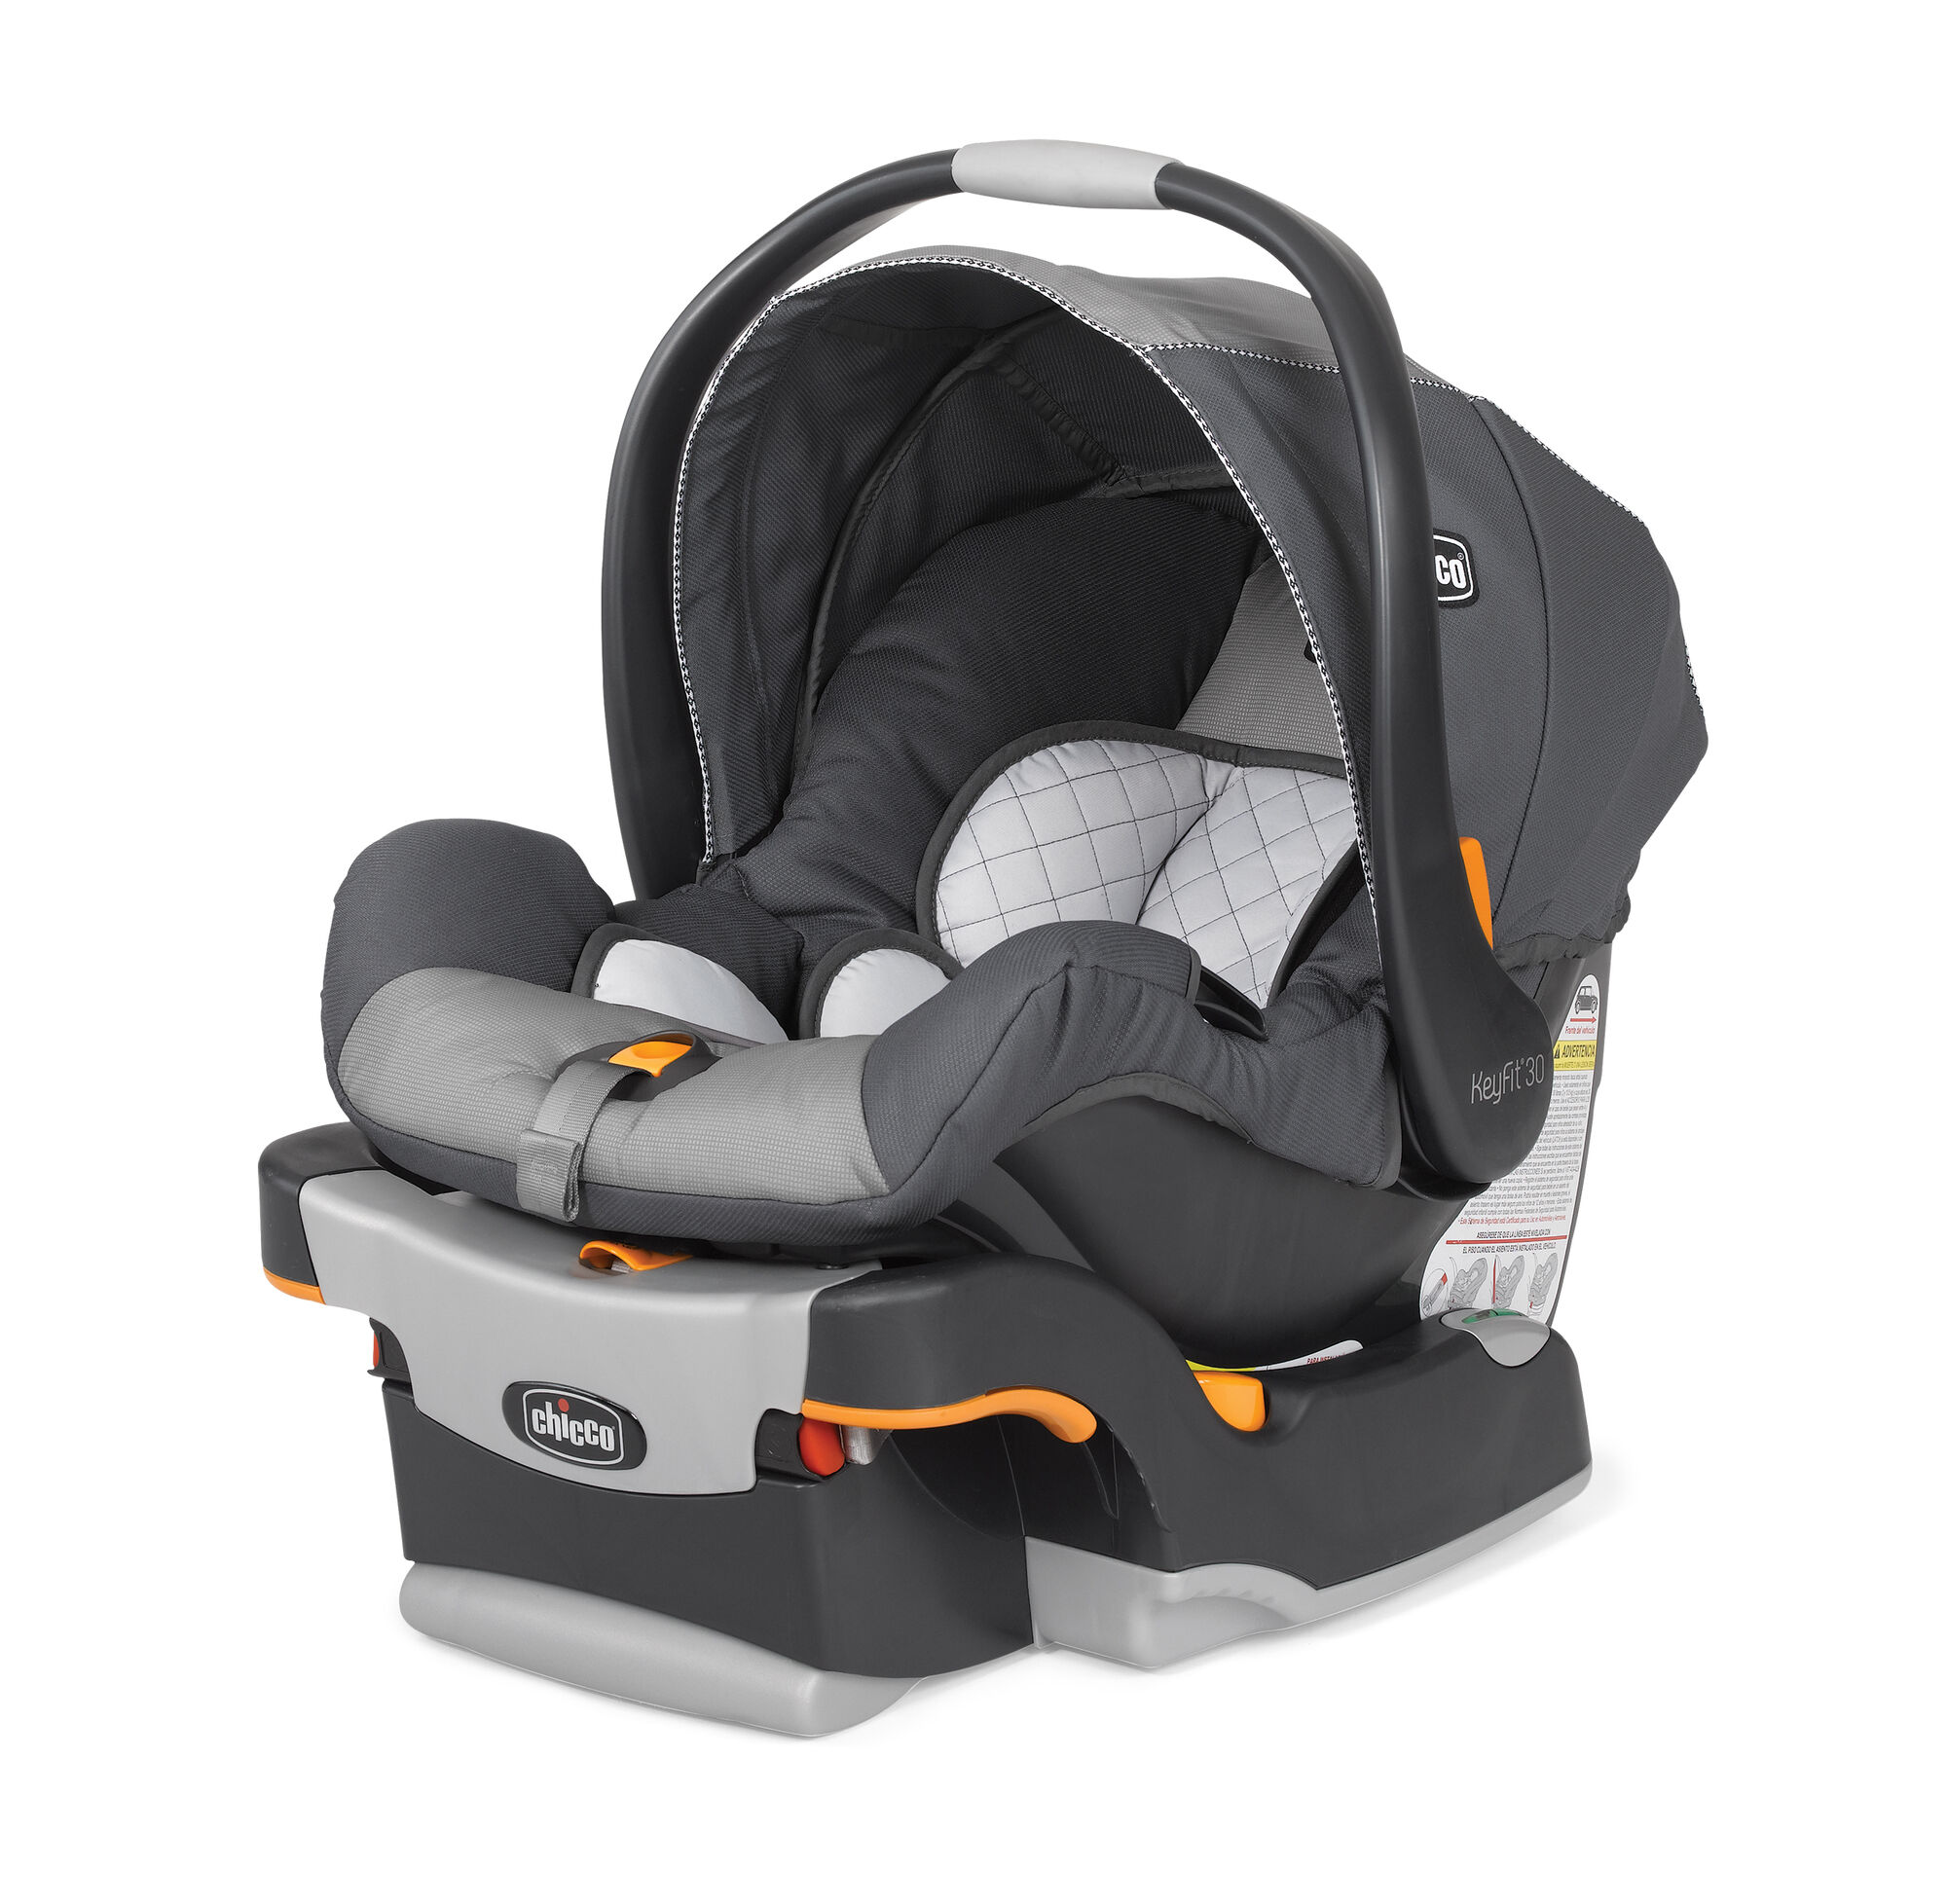 Vehicle Seats Product : Keyfit infant car seat moonstone chicco